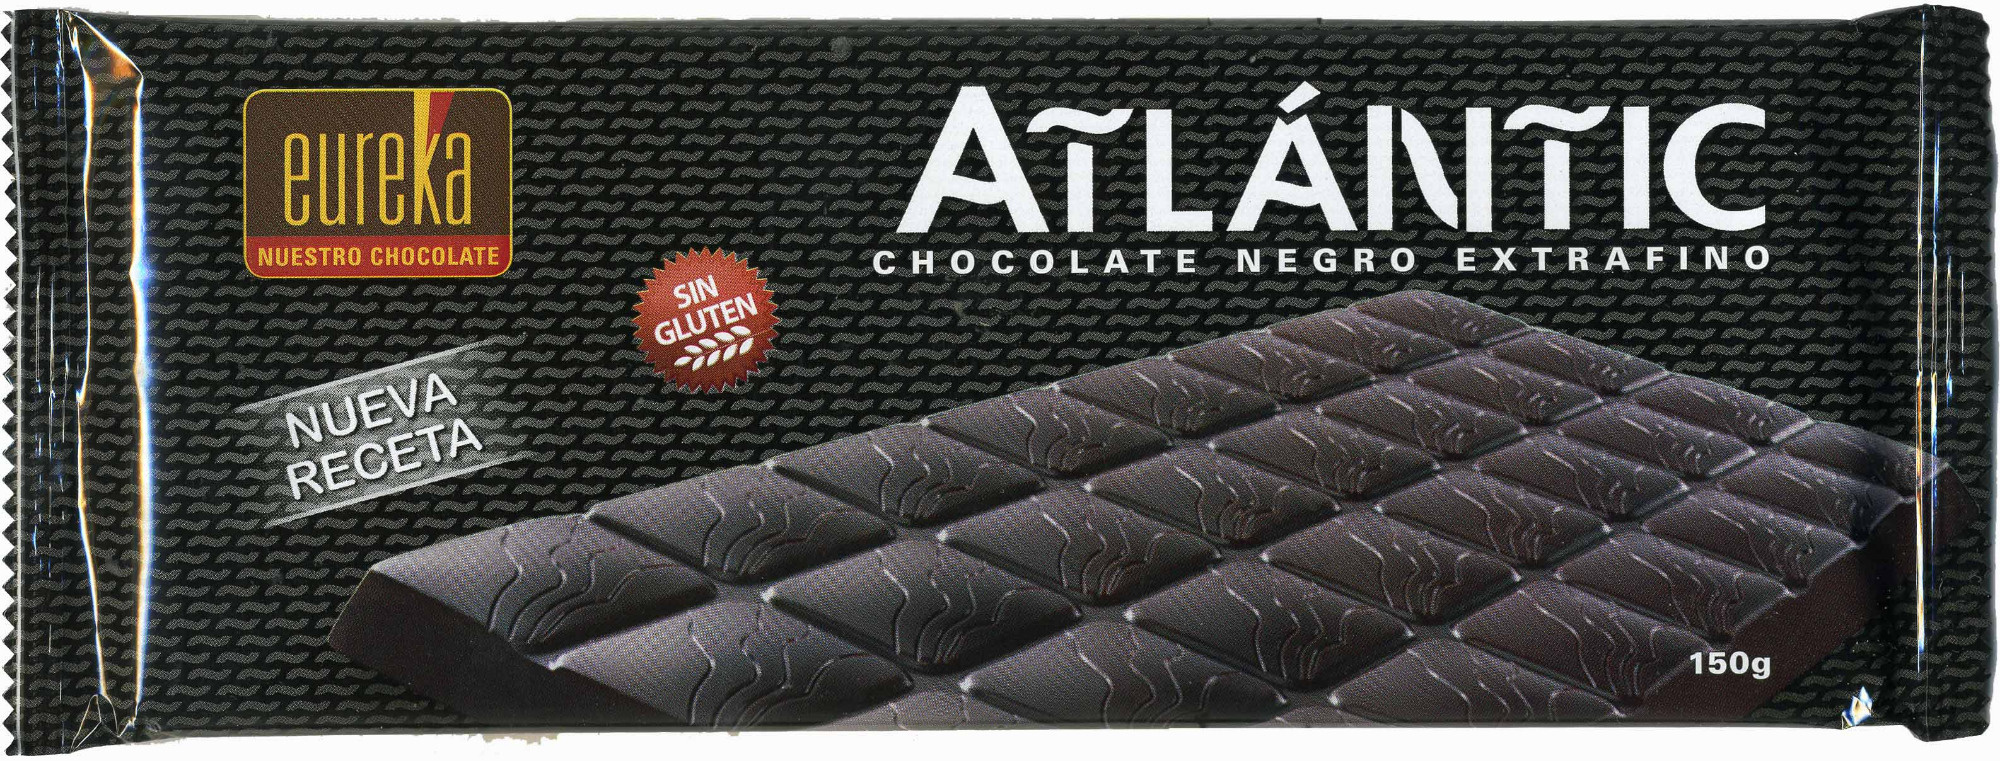 Tableta de chocolate negro 50% cacao - Product